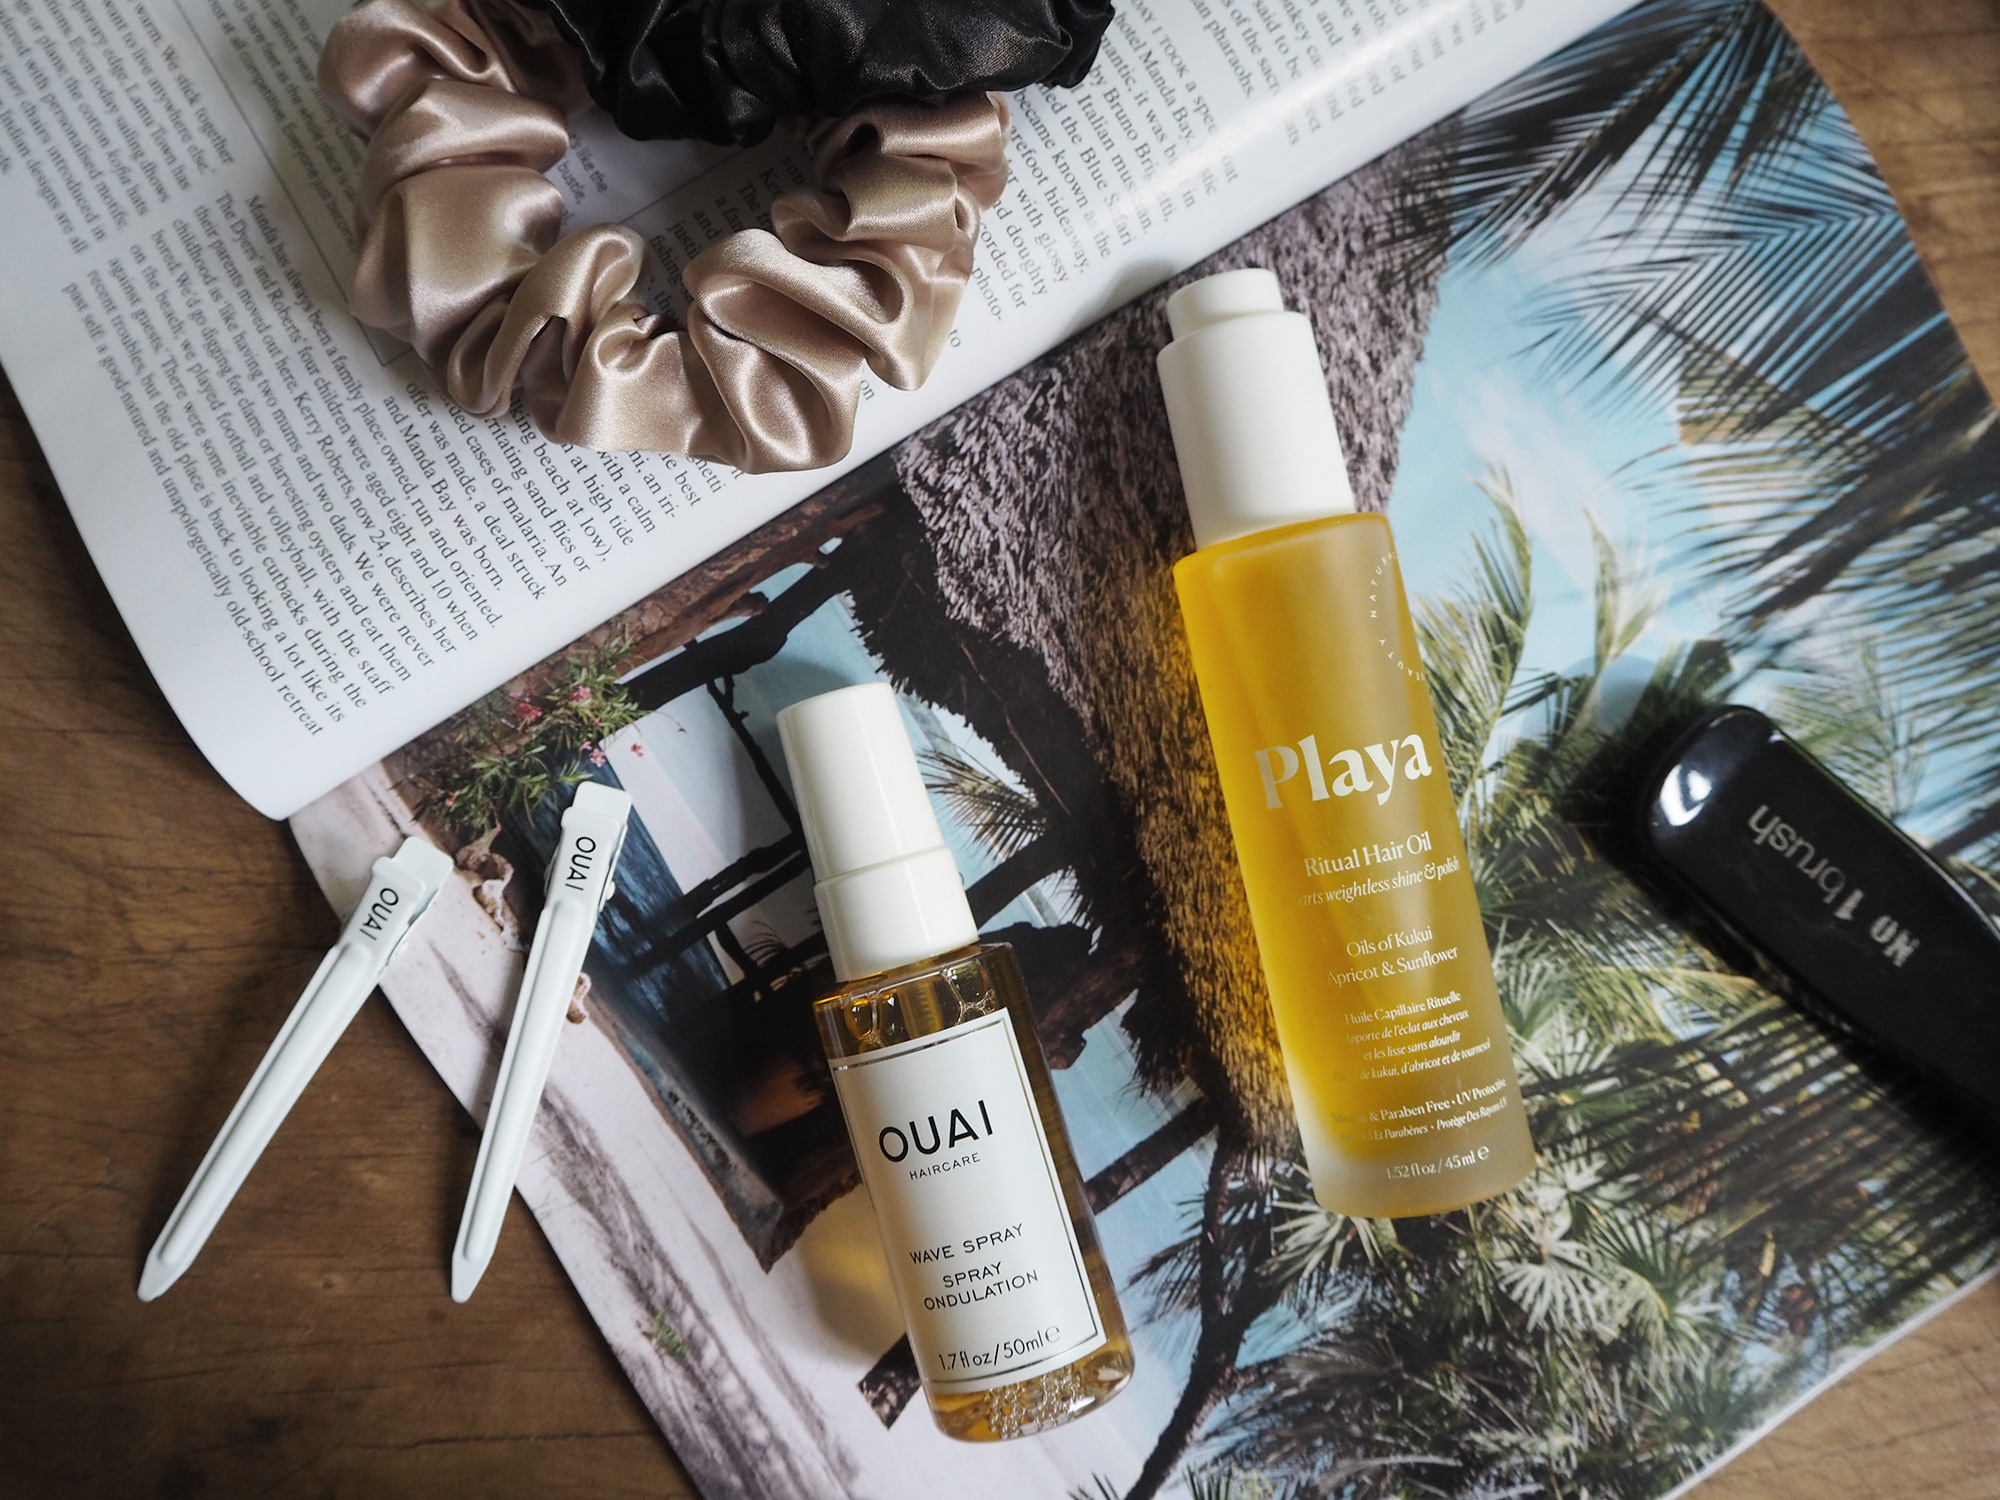 RosyCheeks-blog-haircare-Ouai-Playa